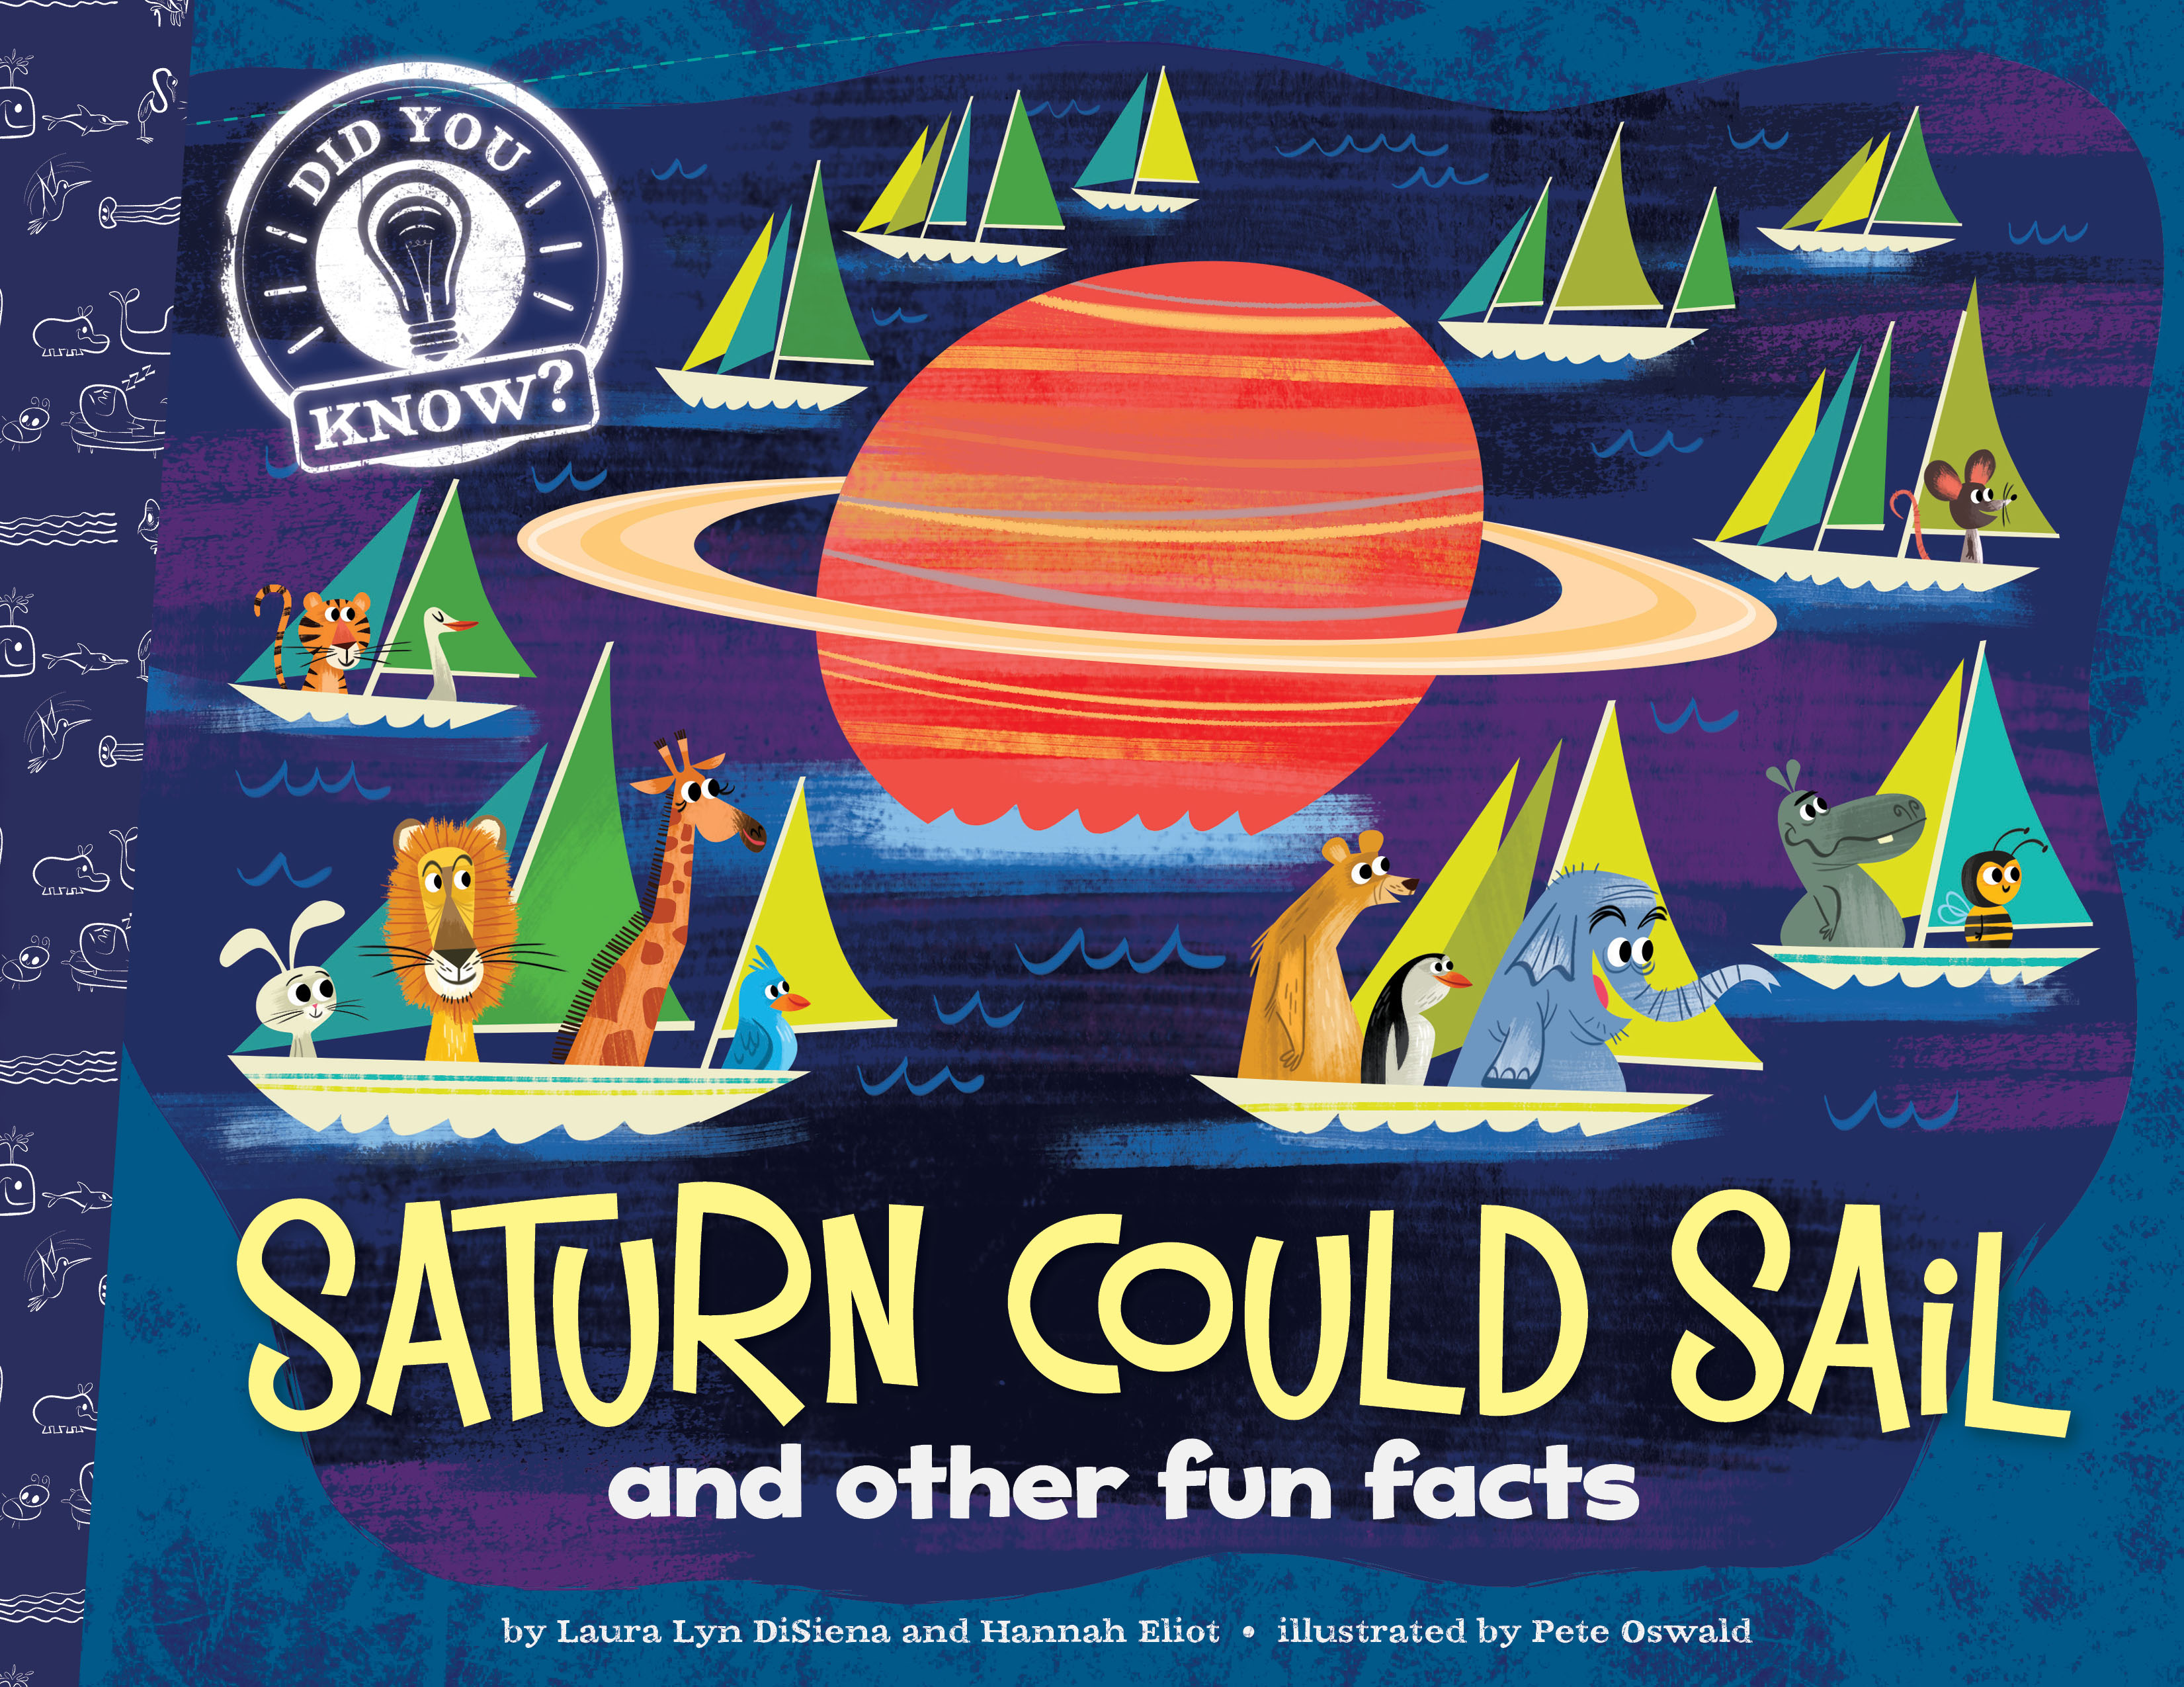 Book Cover Image (jpg): Saturn Could Sail